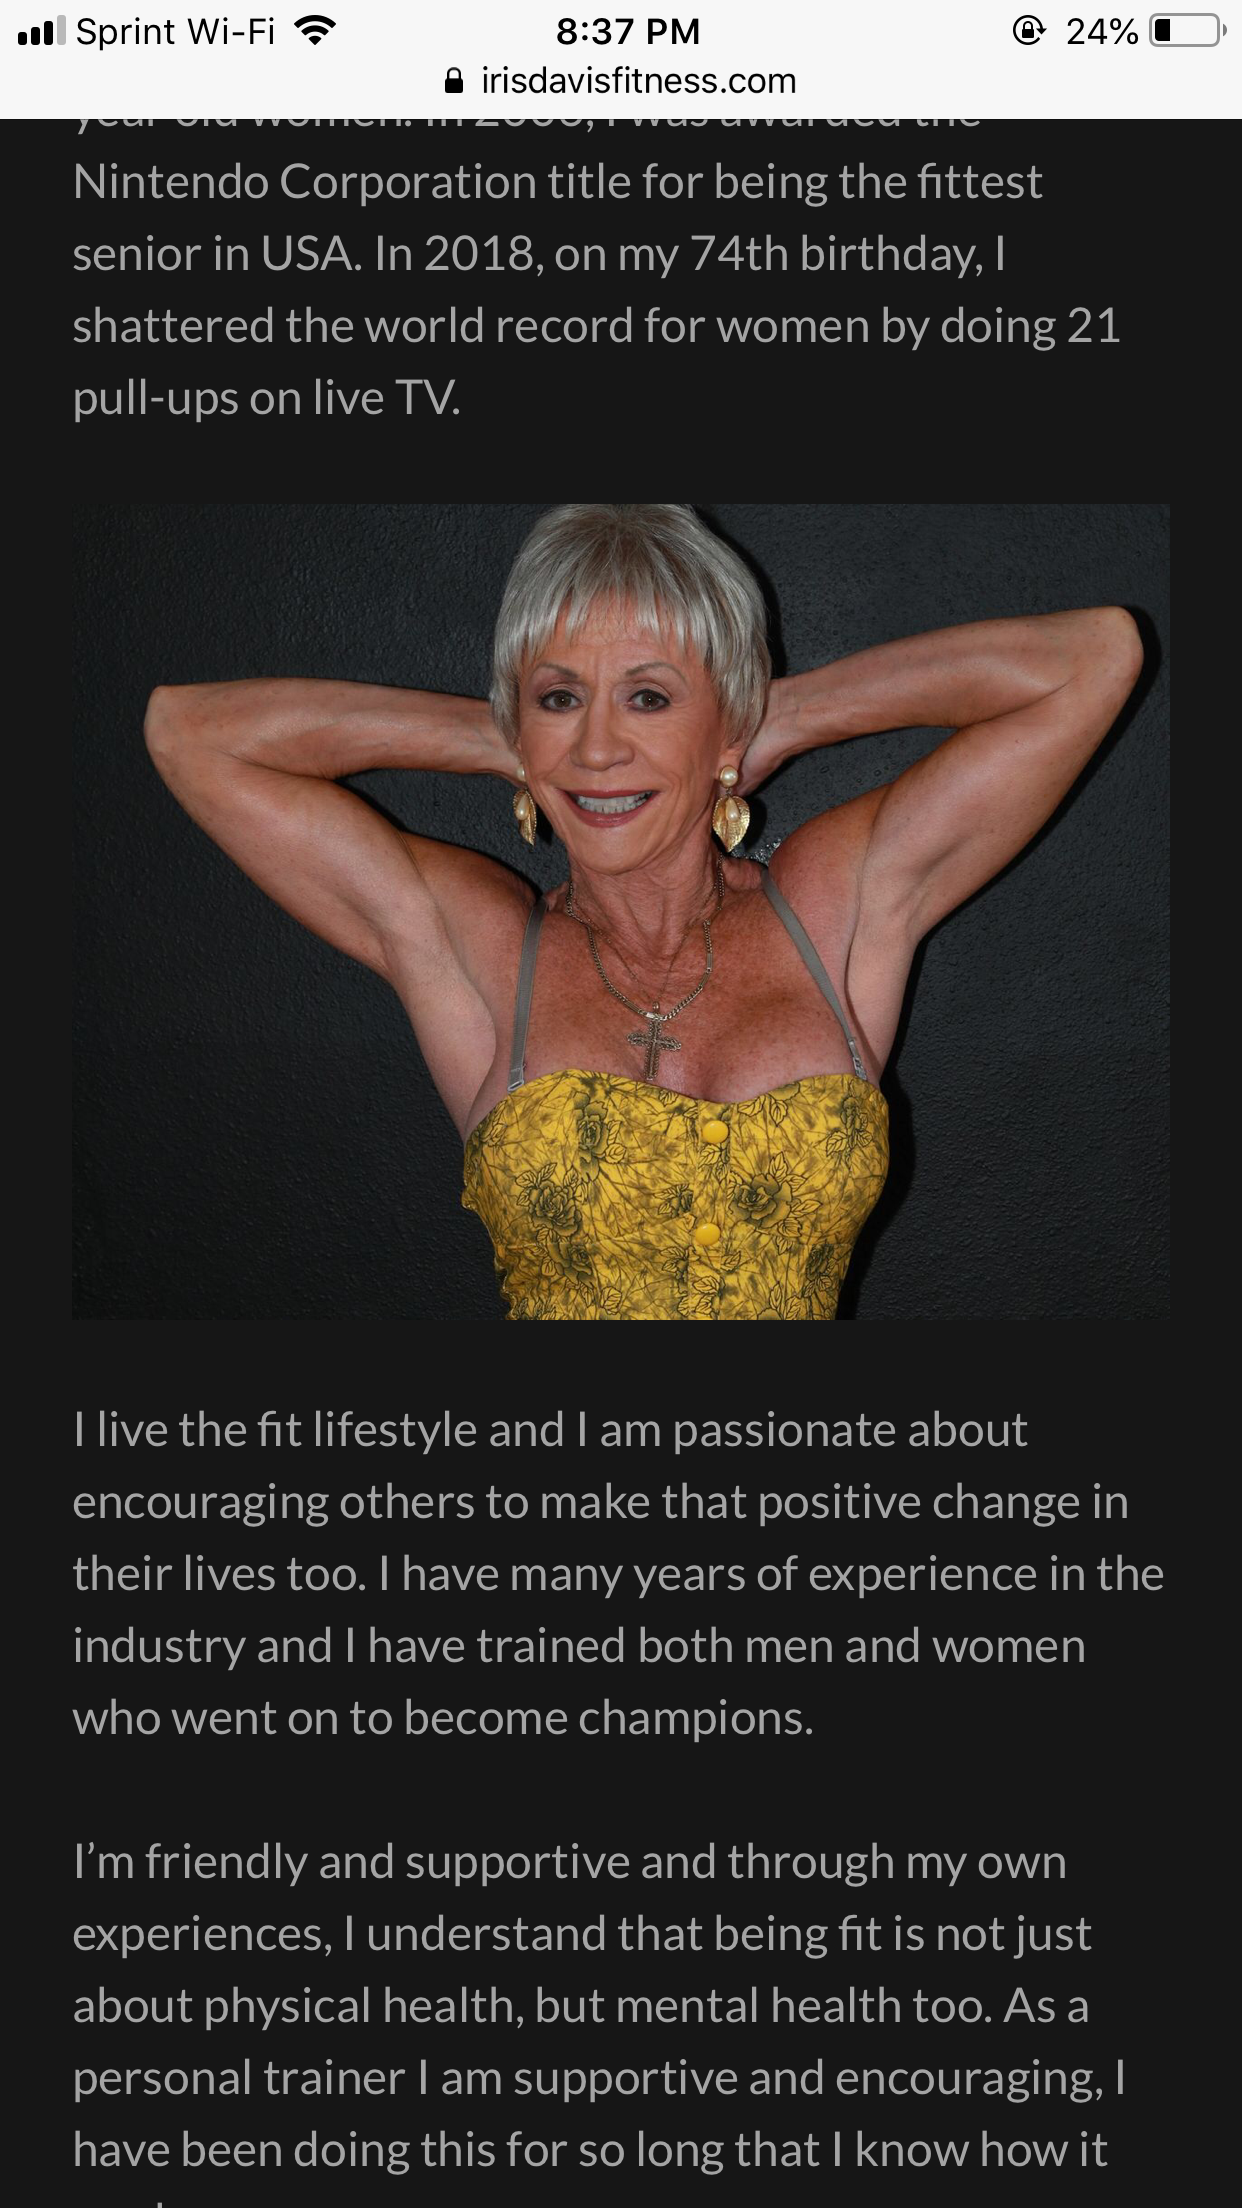 Pin By Lucymericdepaz On Fit 70 80 90 Year Olds World Records Fitness Lifestyle Live Tv